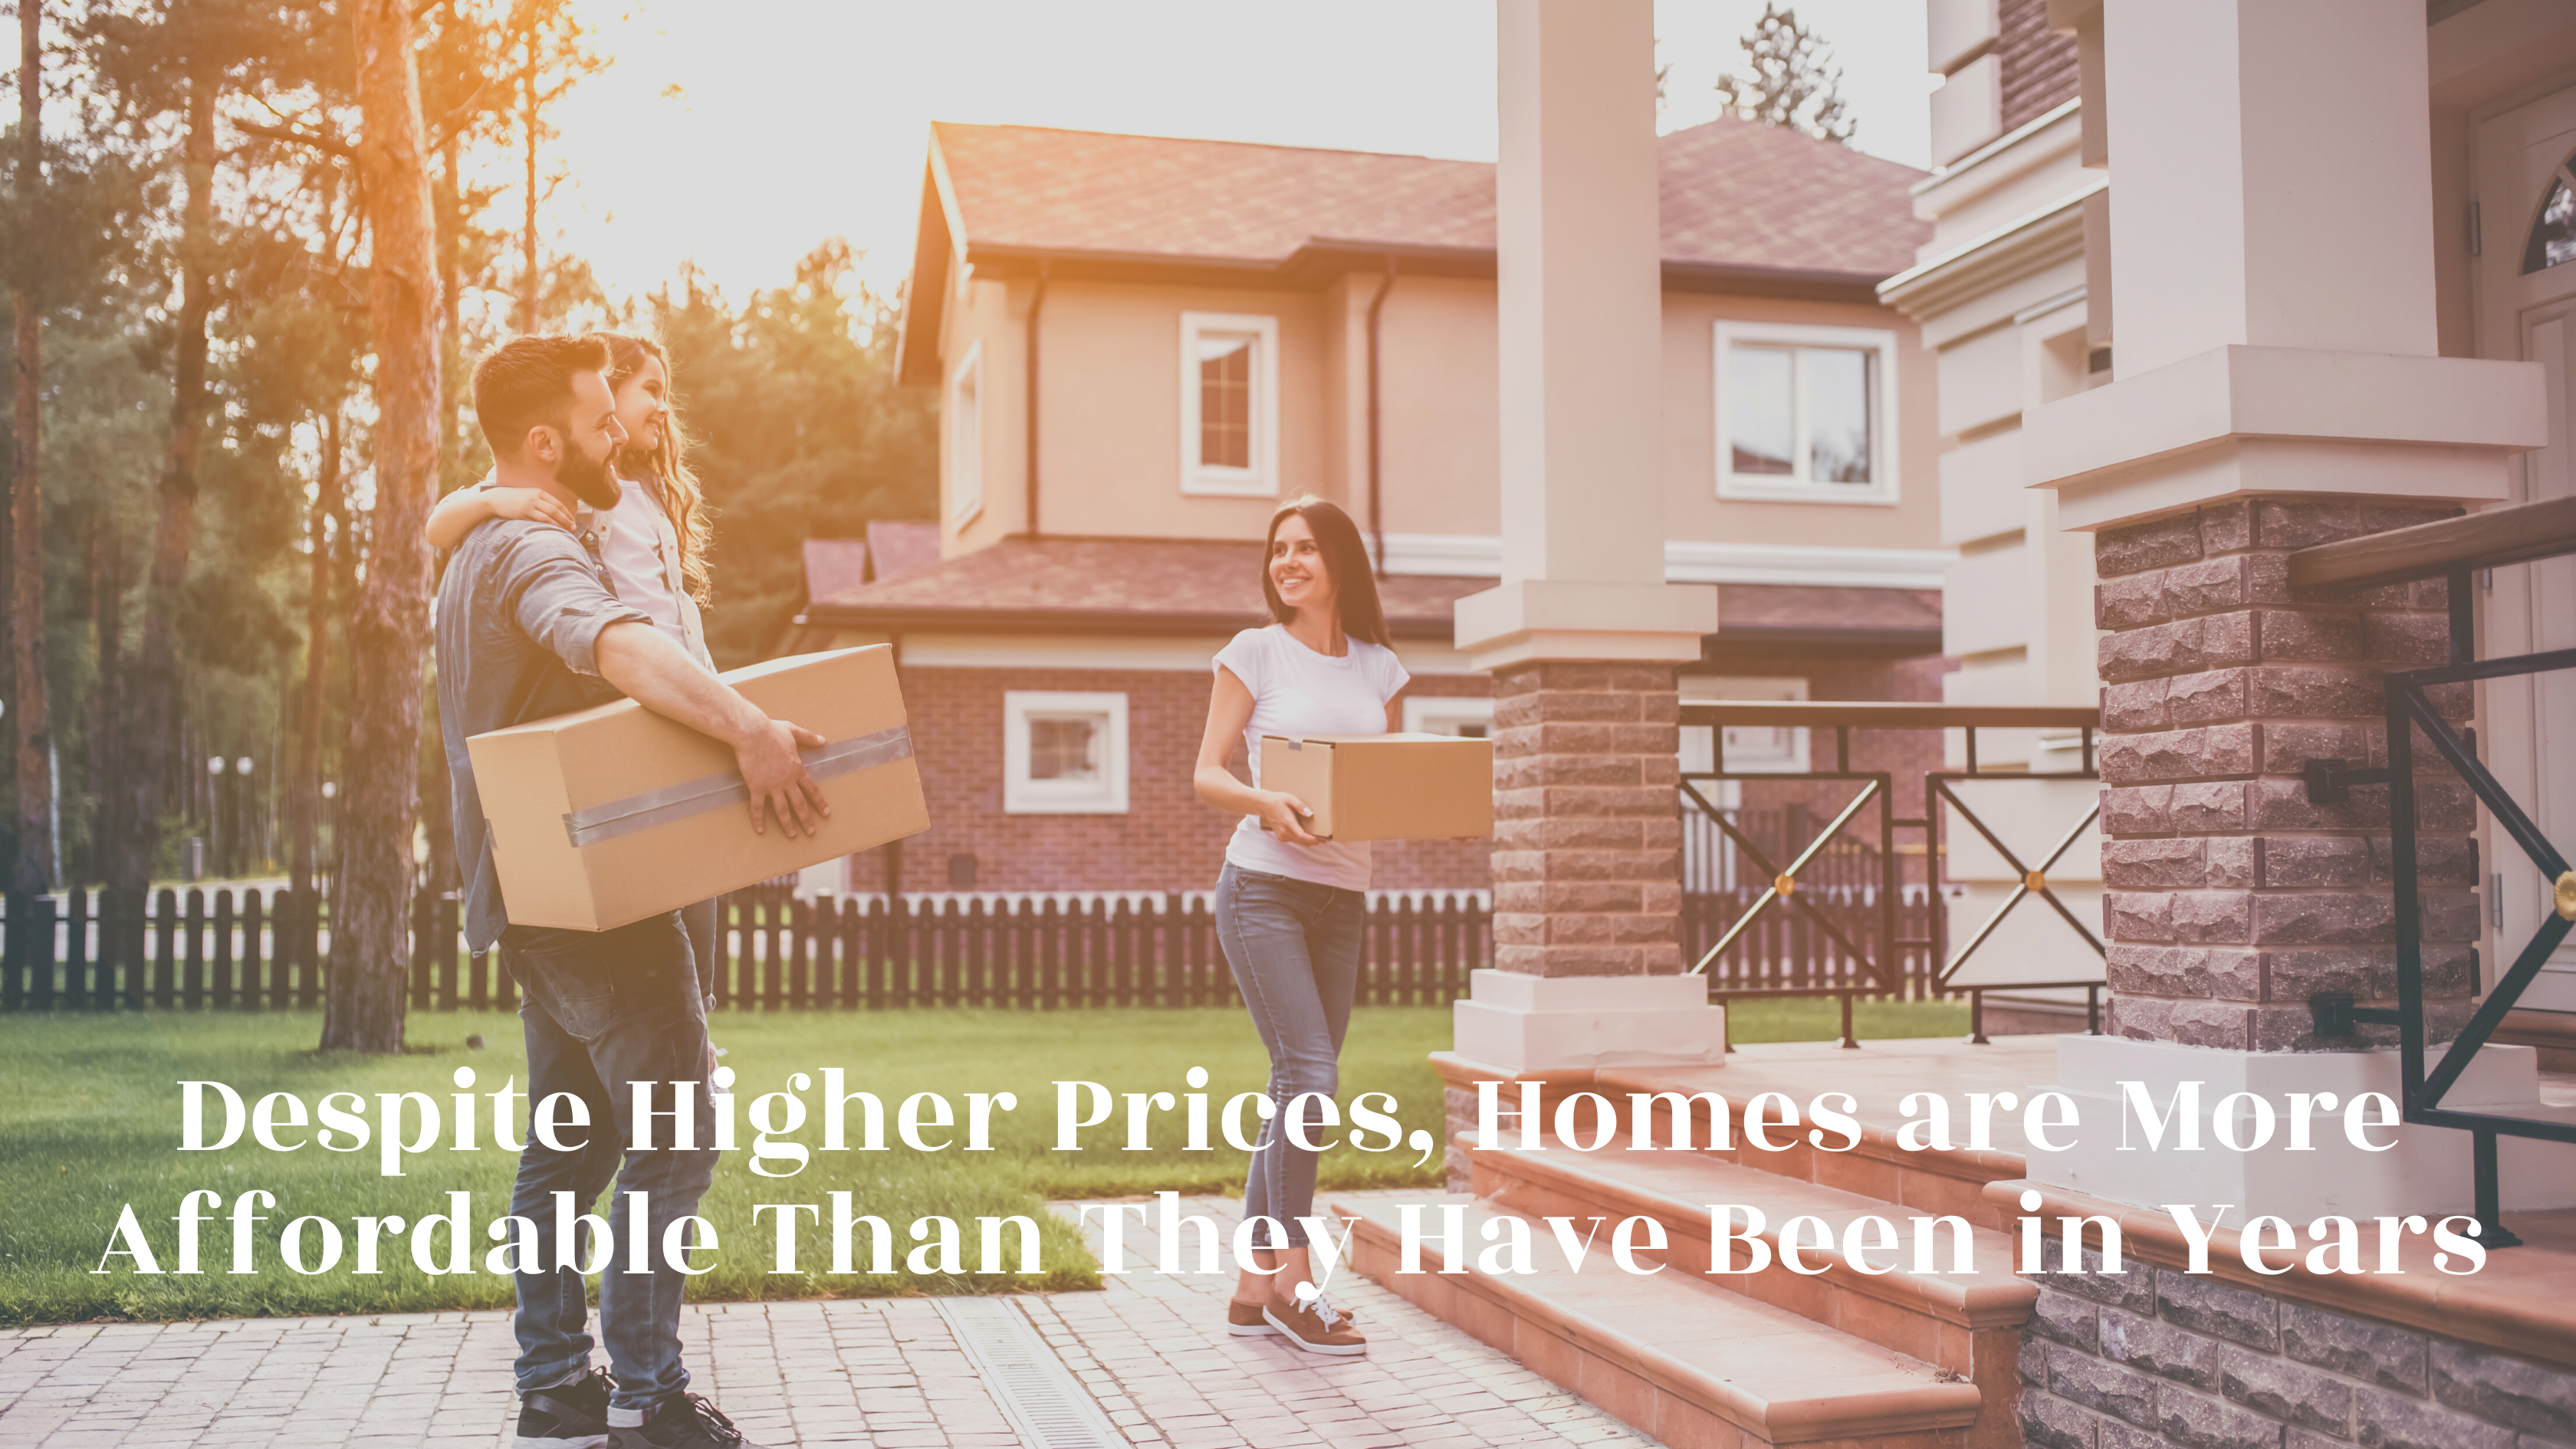 Homes are More Affordable